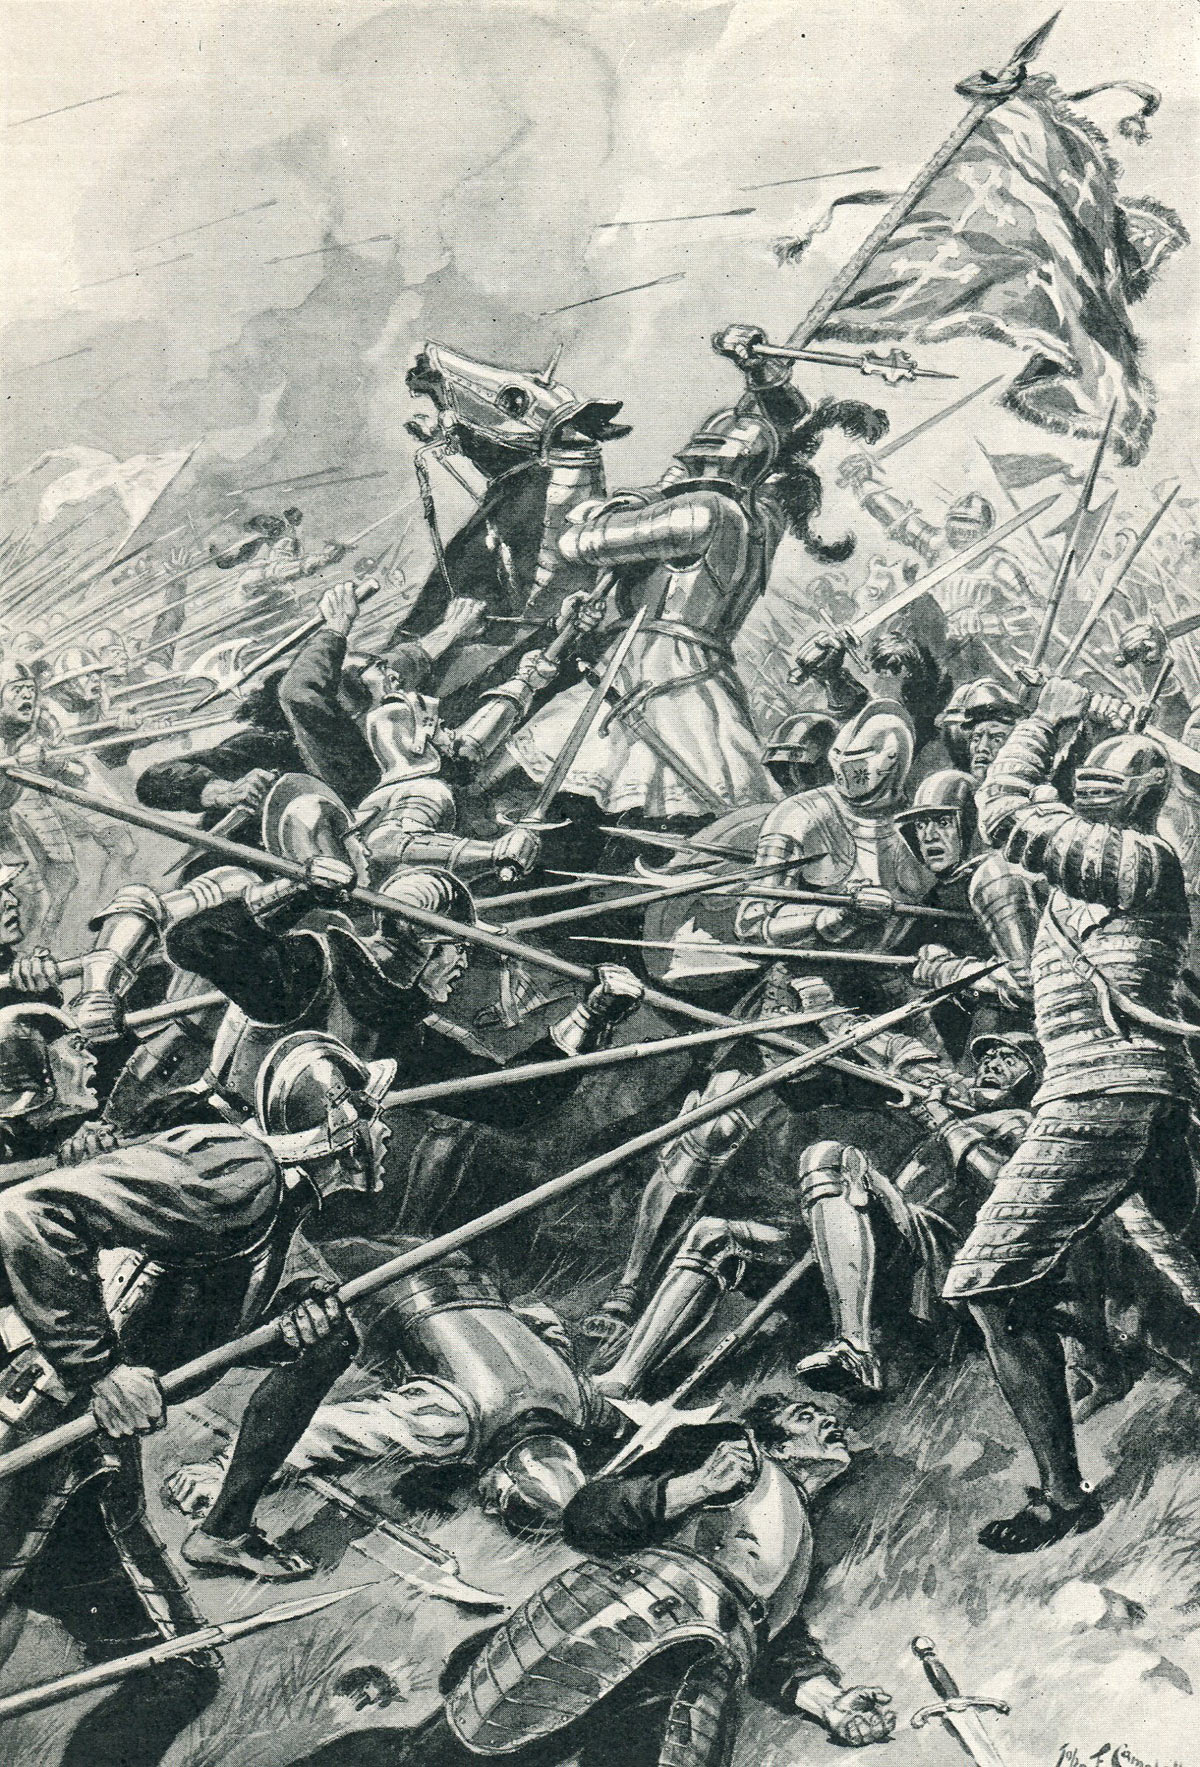 Battle of Flodden on 9th September 1513